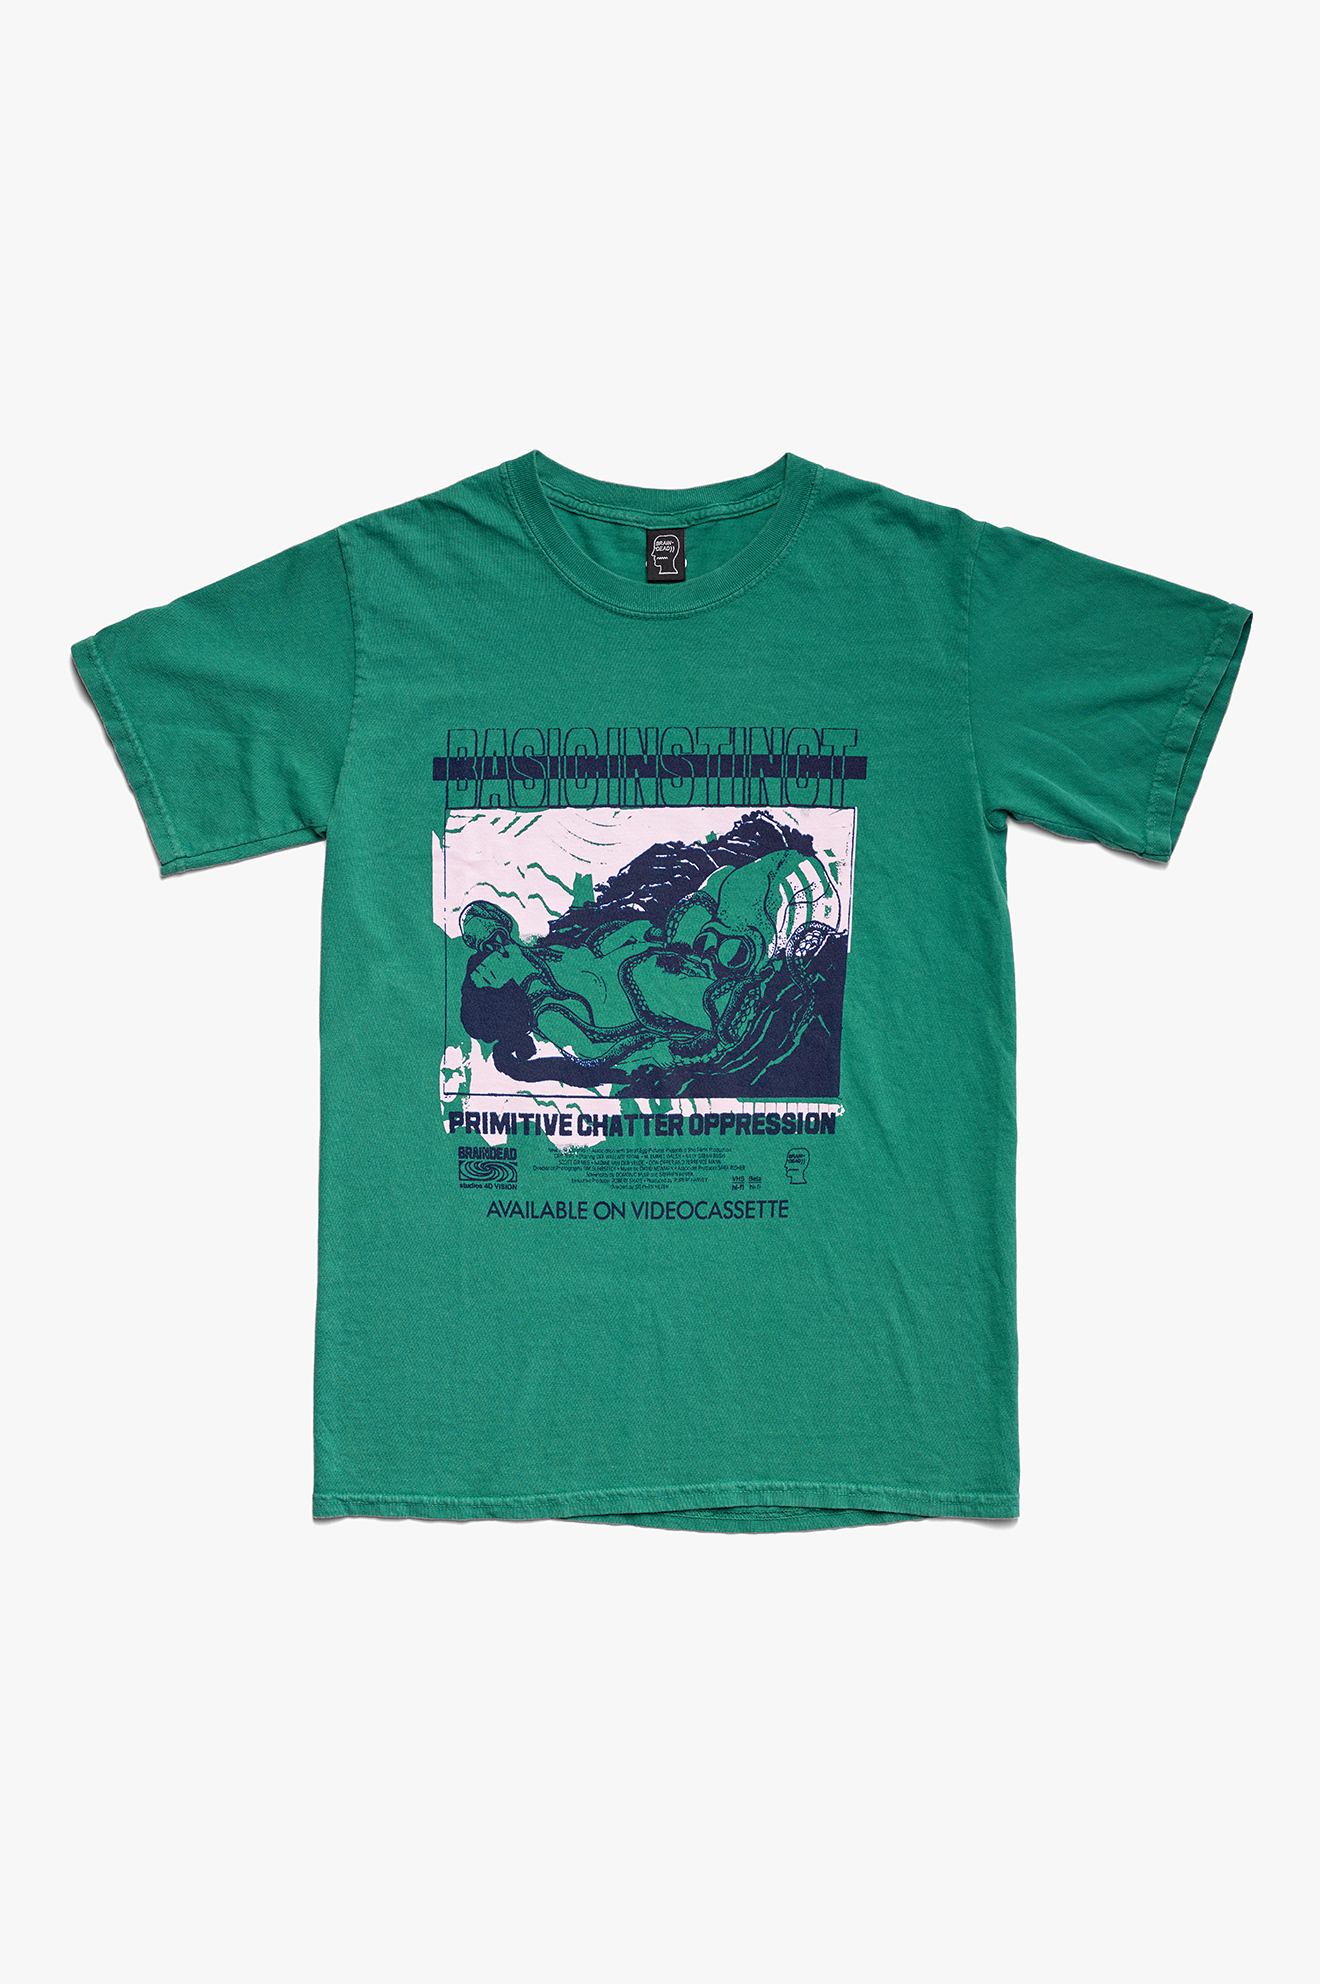 Basic Instinct T-Shirt Green